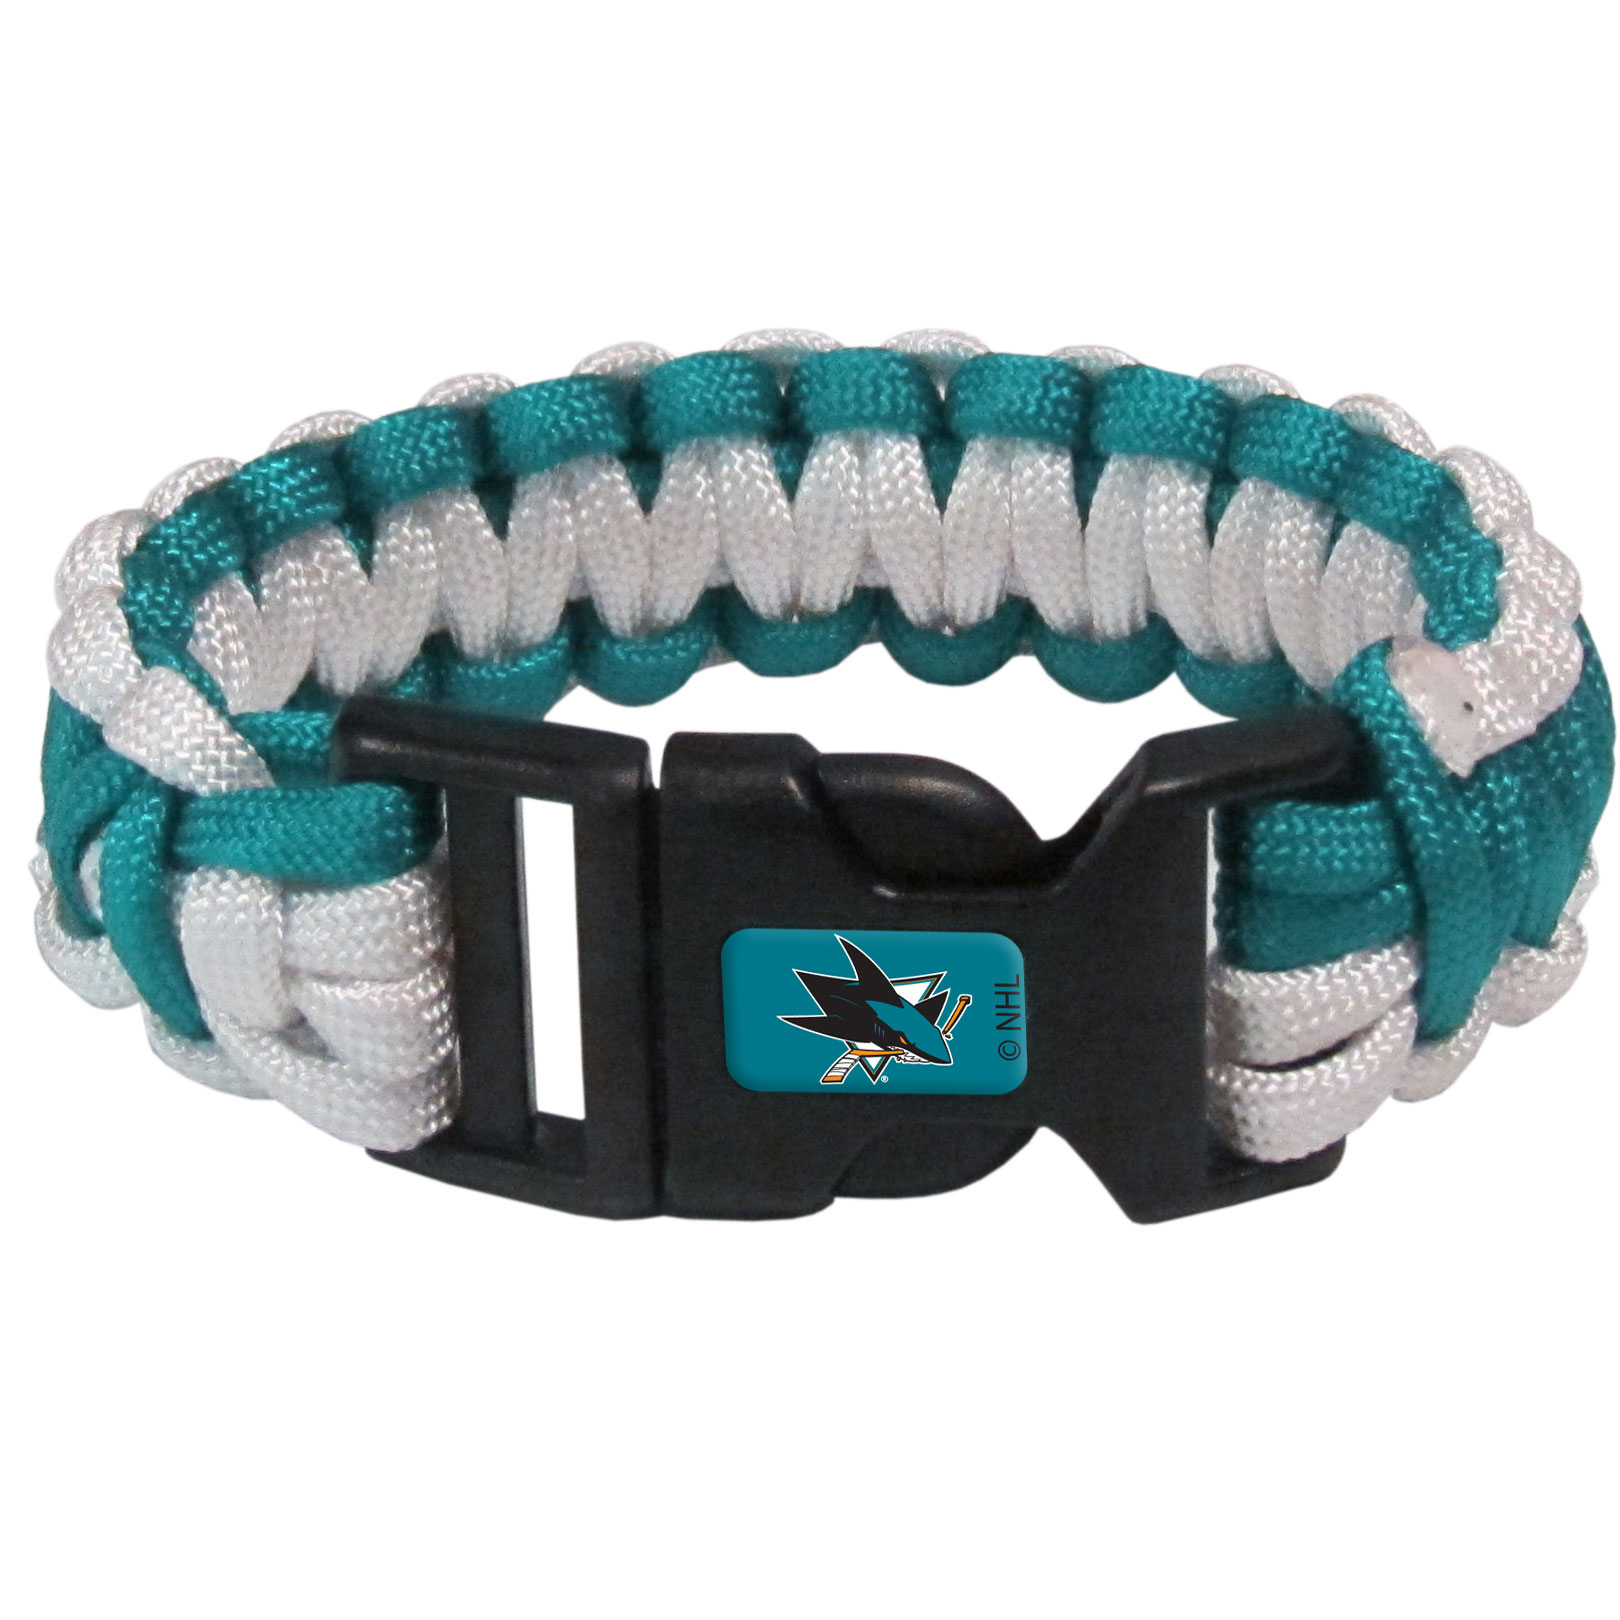 San Jose Sharks® Survivor Bracelet - Our functional and fashionable San Jose Sharks® survivor bracelets contain 2 individual 300lb test paracord rated cords that are each 5 feet long. The team colored cords can be pulled apart to be used in any number of emergencies and look great while worn. The bracelet features a team emblem on the clasp.